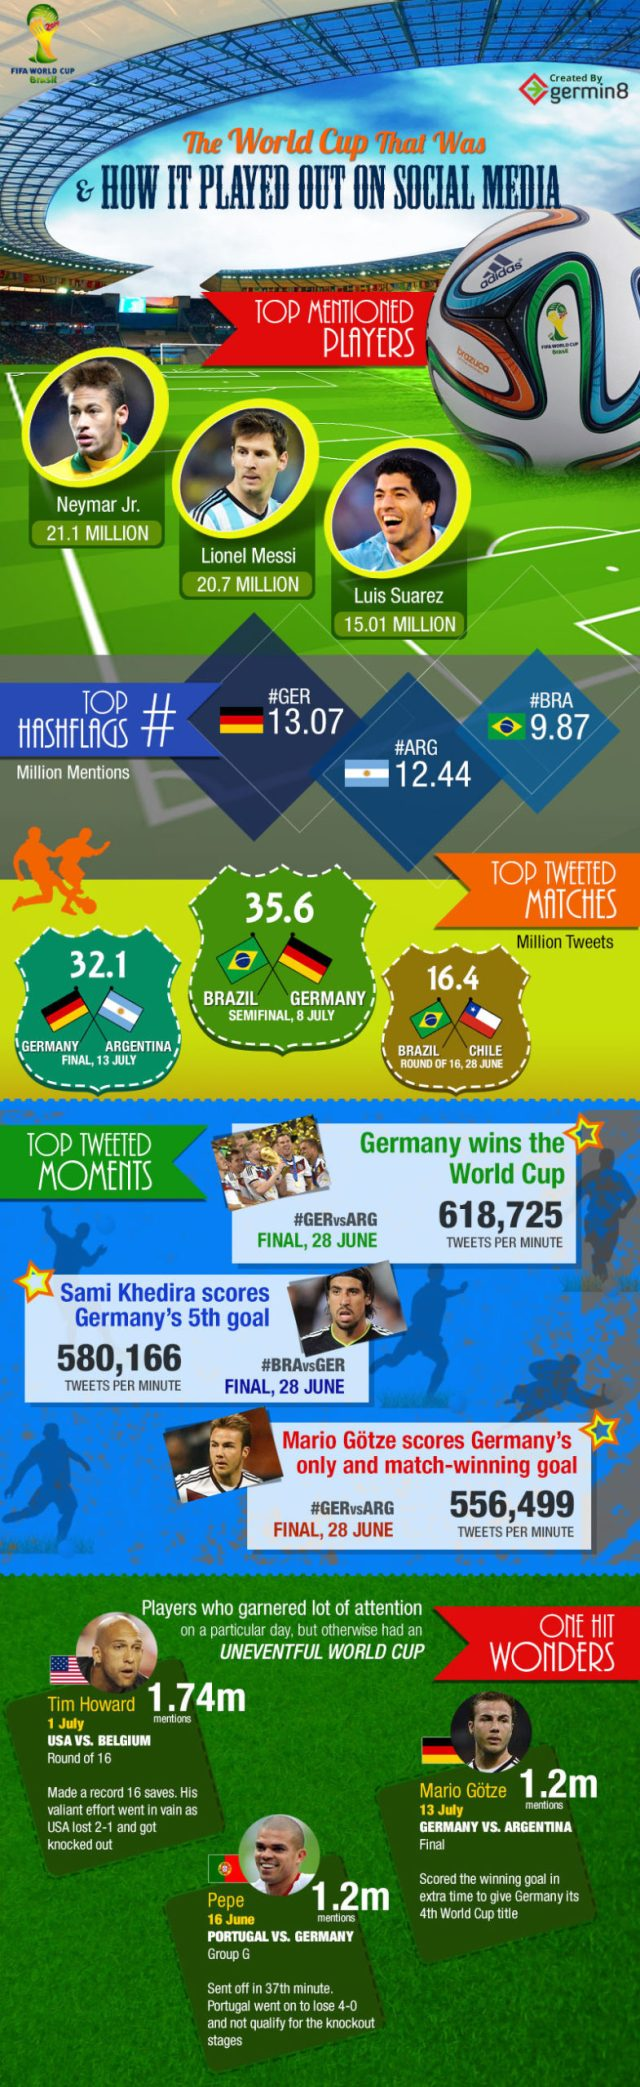 Social Media Analysis for the FIFA World Cup 2014. Its impact, key statistics and much more!